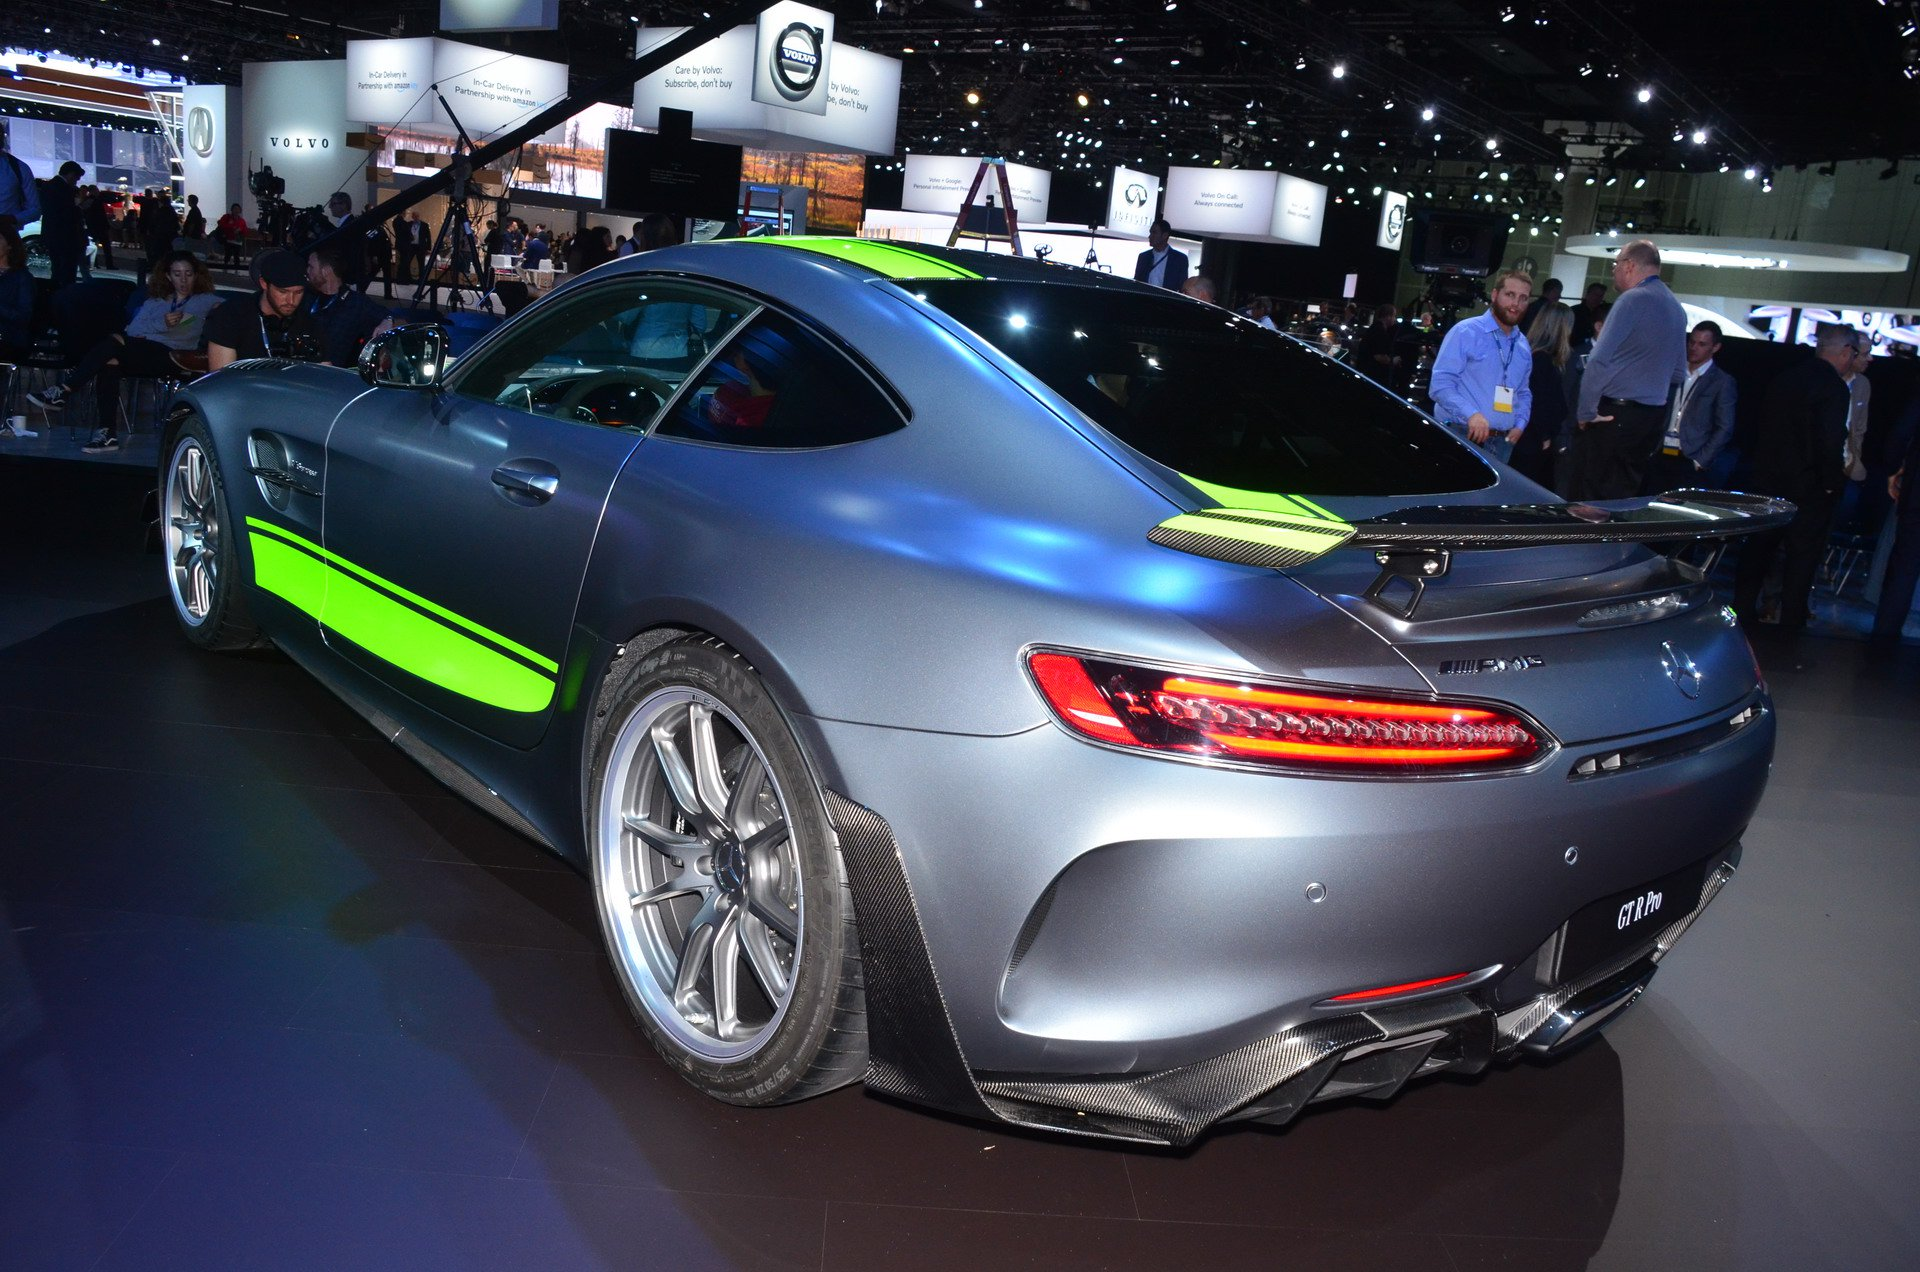 mercedes amg gt r pro headlines new gt range. Black Bedroom Furniture Sets. Home Design Ideas